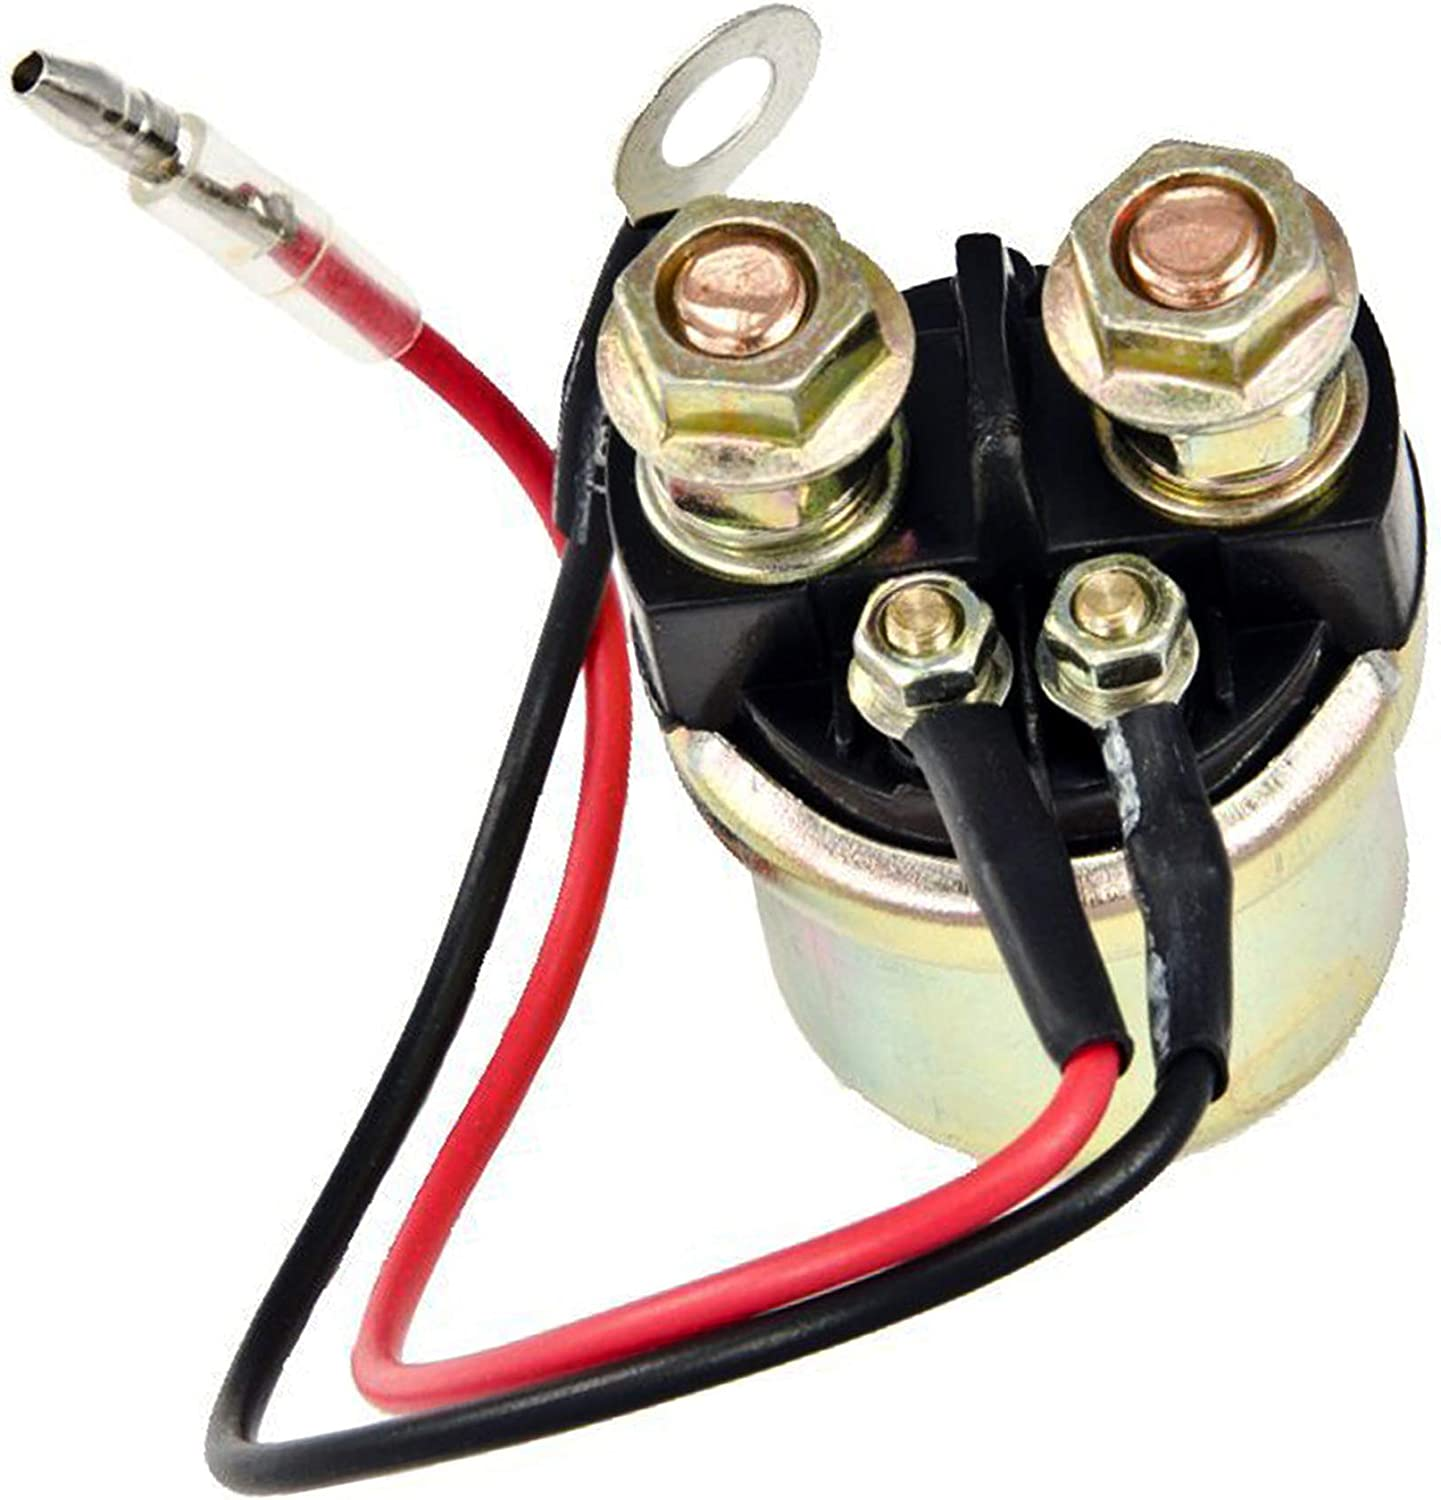 PROCOMPANY Starter Relay Solenoid Replaces FOR Yamaha 20 50 60 HP Outboard Boat Motor Engine 1989-UP 200 Horse Power Outboard 2002 OEM 6G1-81941-10-00